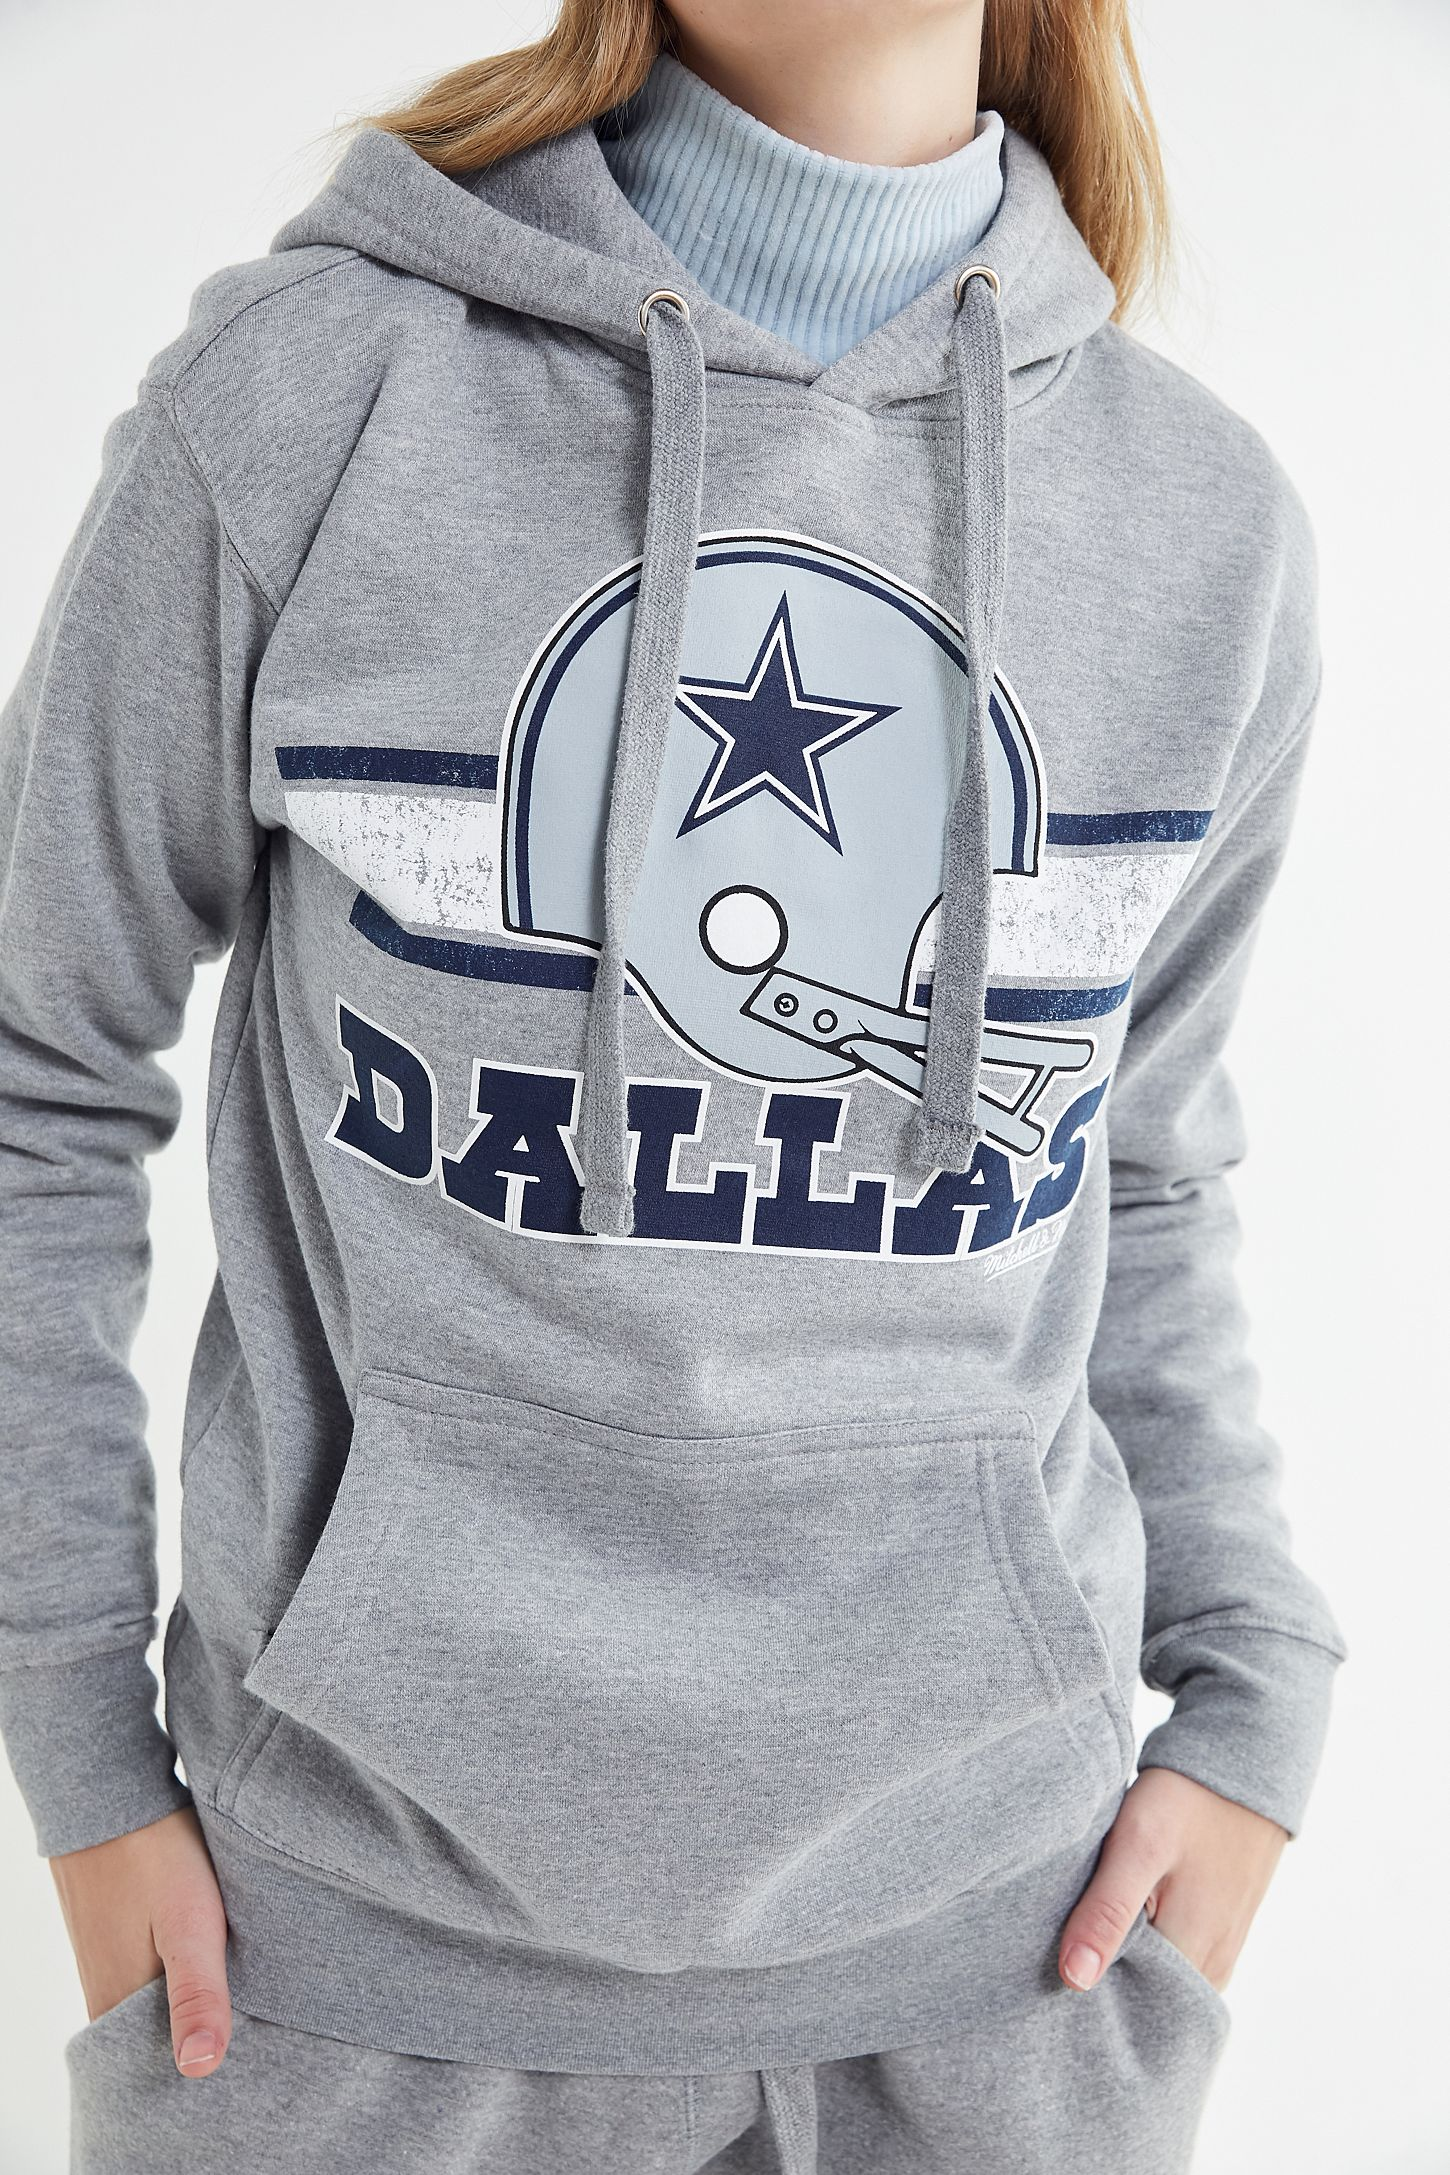 the latest ee7ad 65418 Mitchell & Ness Dallas Cowboys Hoodie Sweatshirt